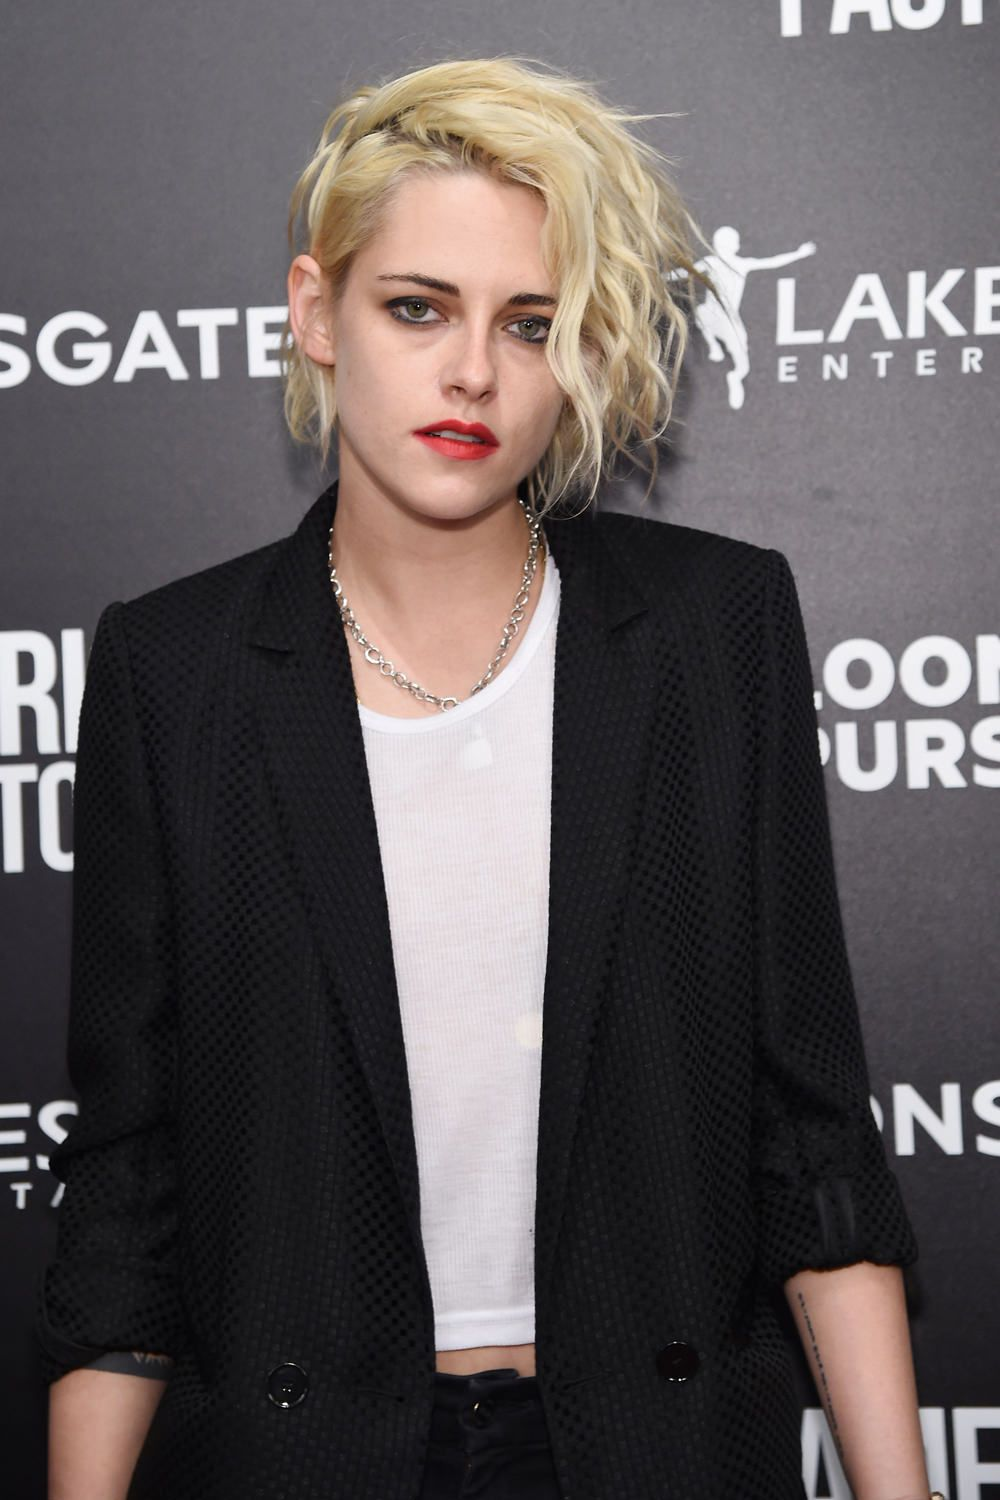 kristen-stewart-american-pastoral-moma-screening-red-carpet-fashion-sandro-mother-denim-rodarte-tom-lorenzo-site-1